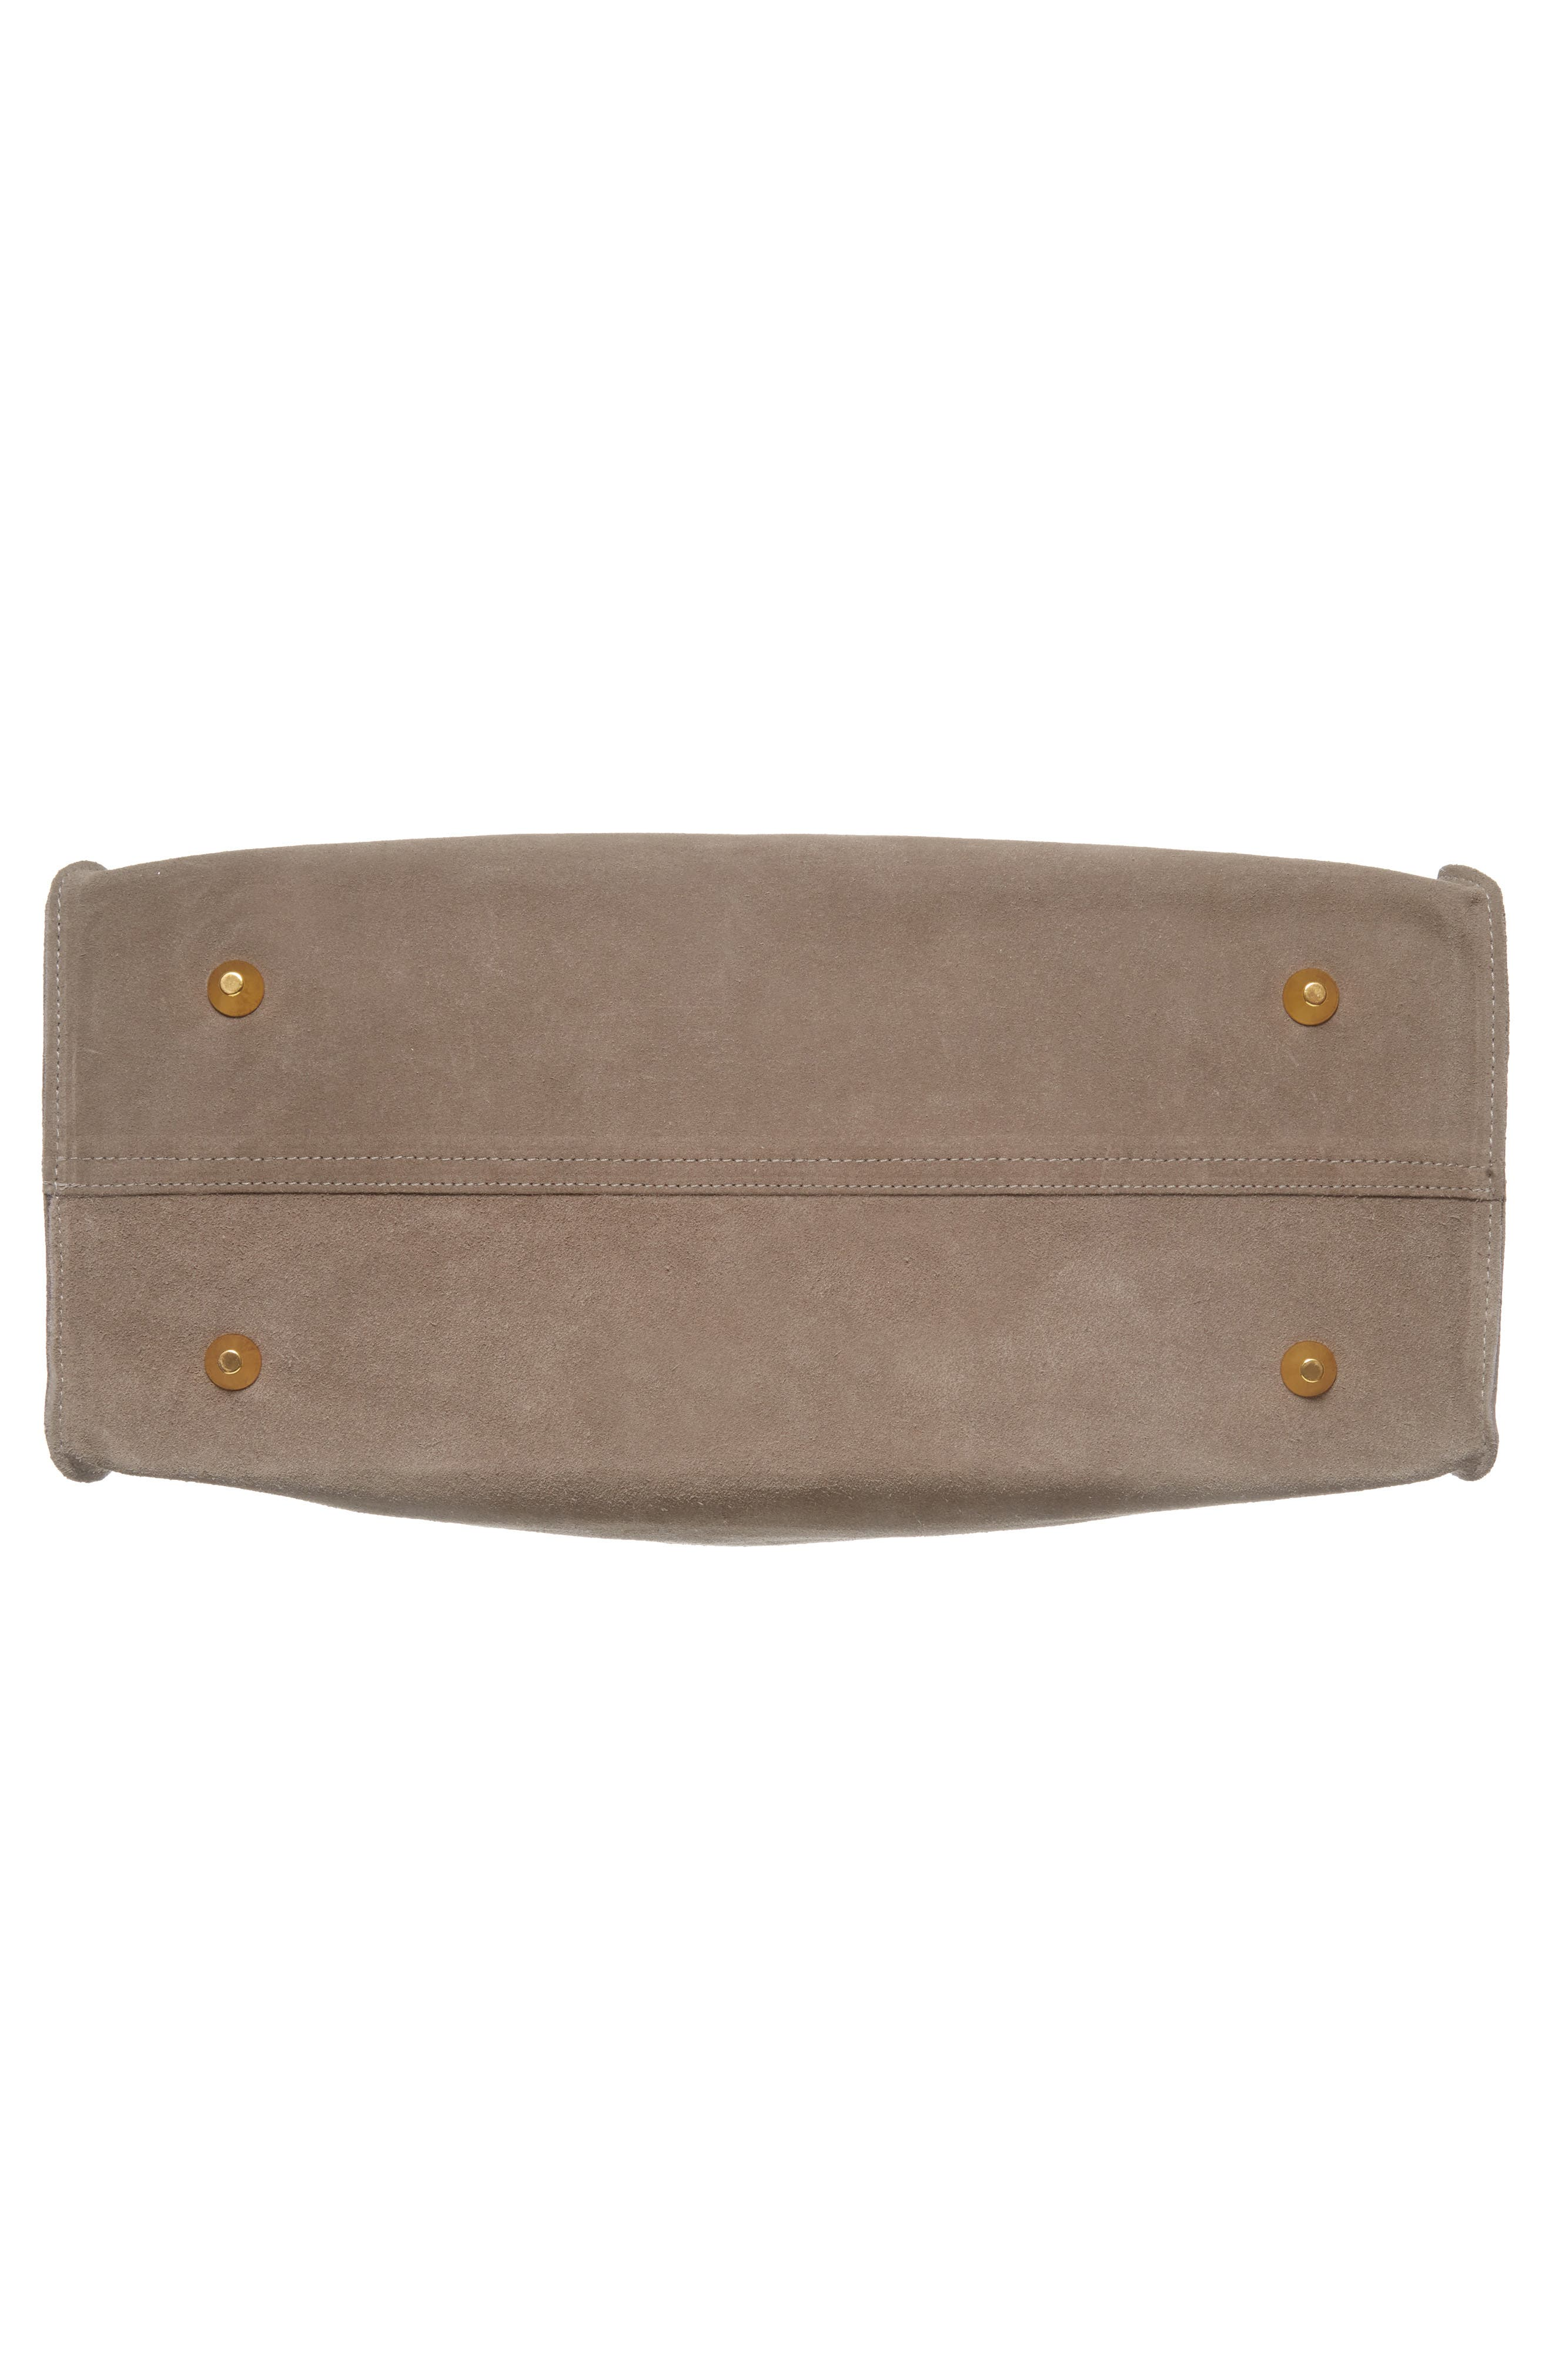 Simple Suede Tote,                             Alternate thumbnail 7, color,                             TAUPE/ YELLOW RUSTIC